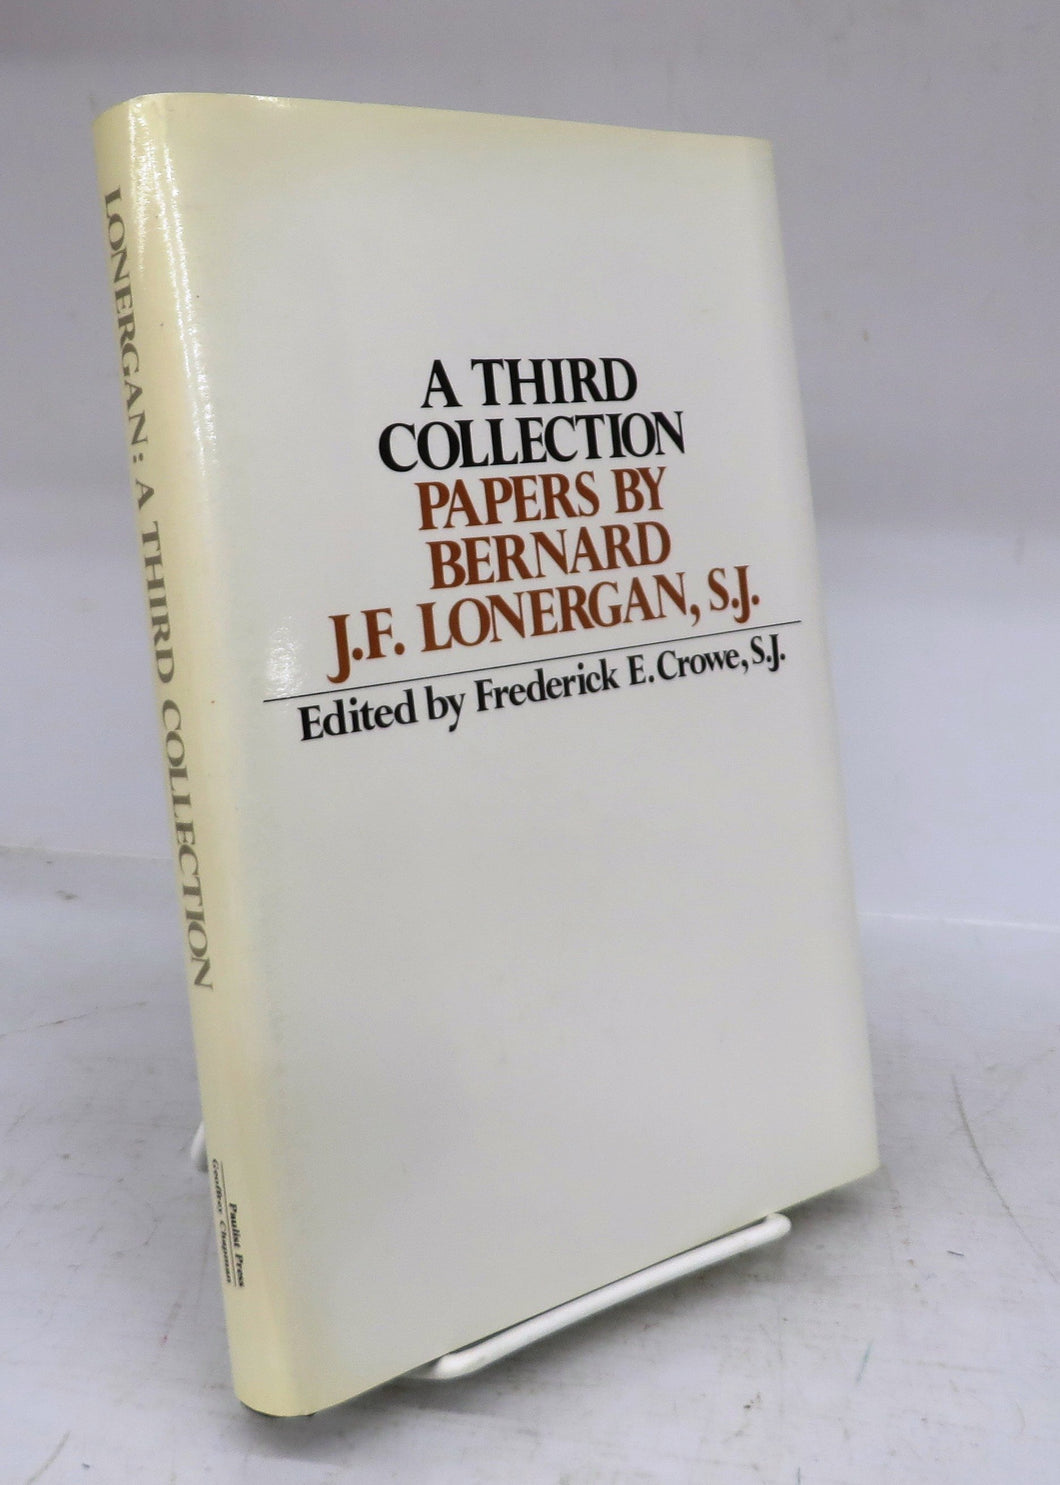 A Third Collection: Papers by Bernard J. F. Lonergan, S. J.